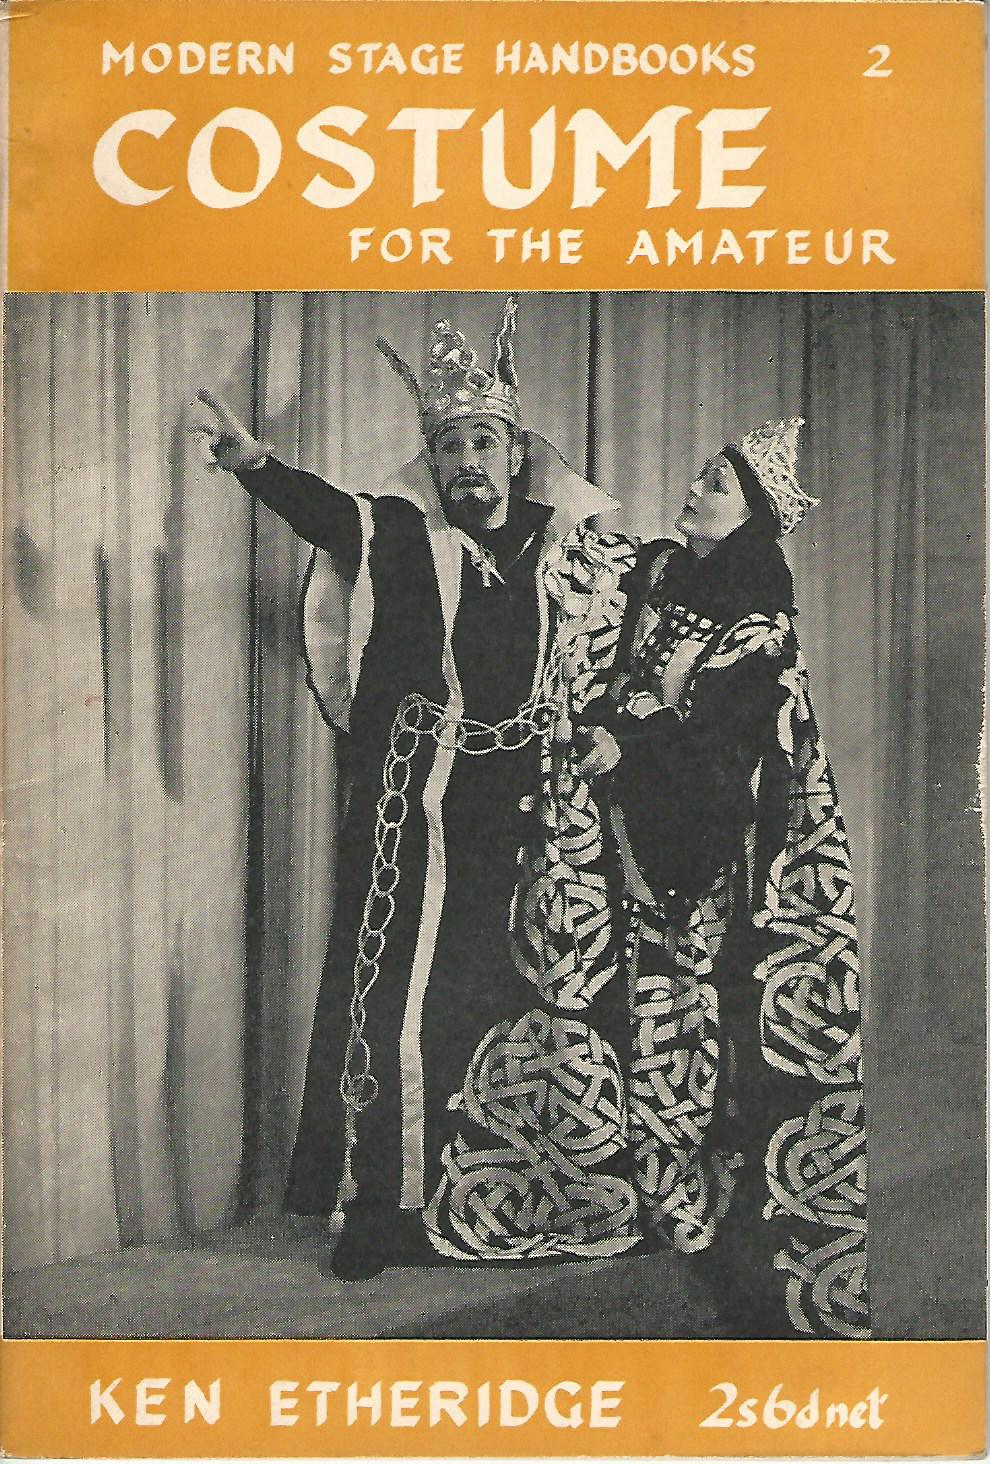 Image for Modern Stage handbooks: Costume for the Amateur. Number 2.